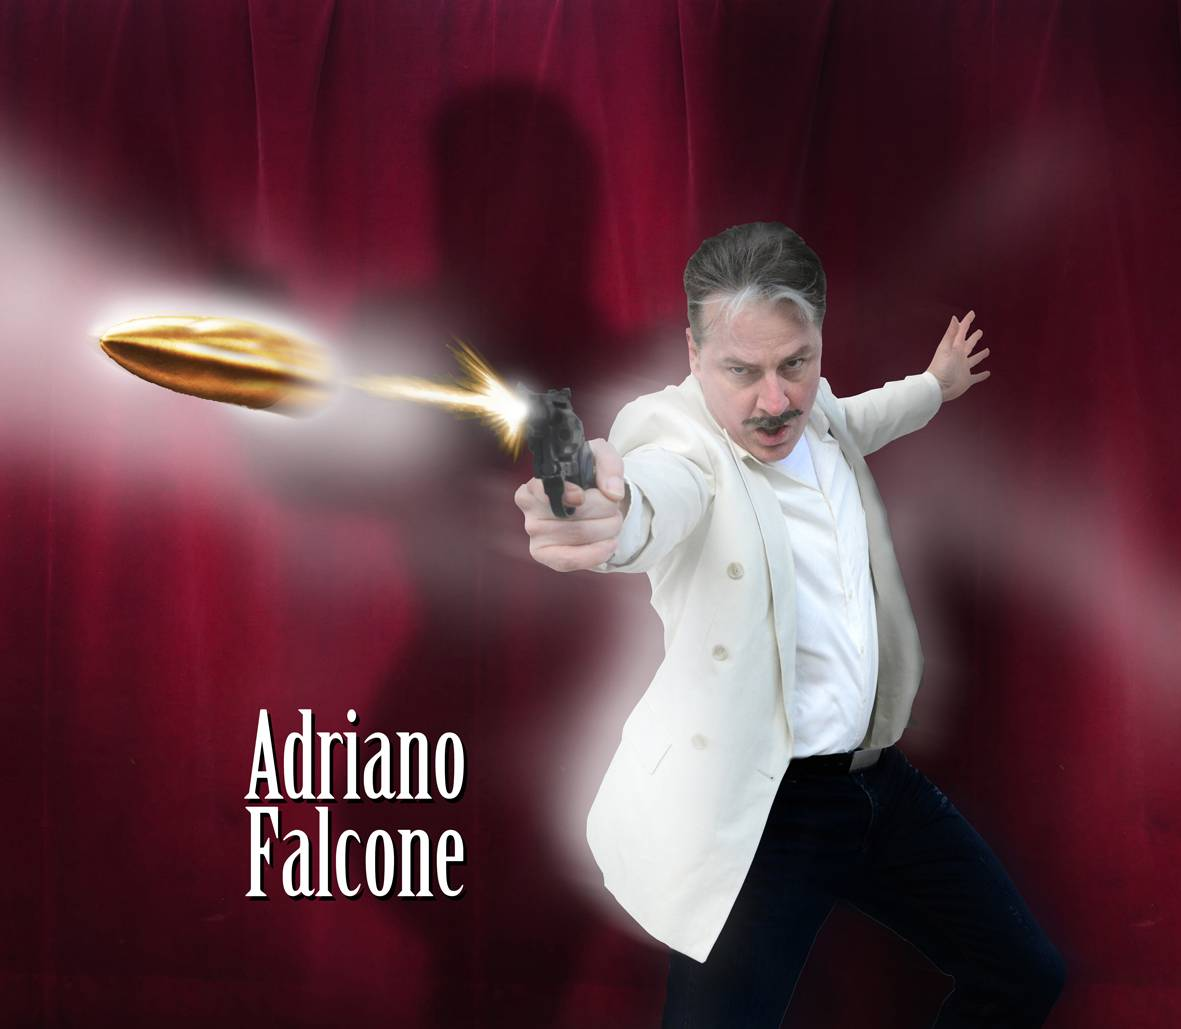 Adriano Falcone web Name s